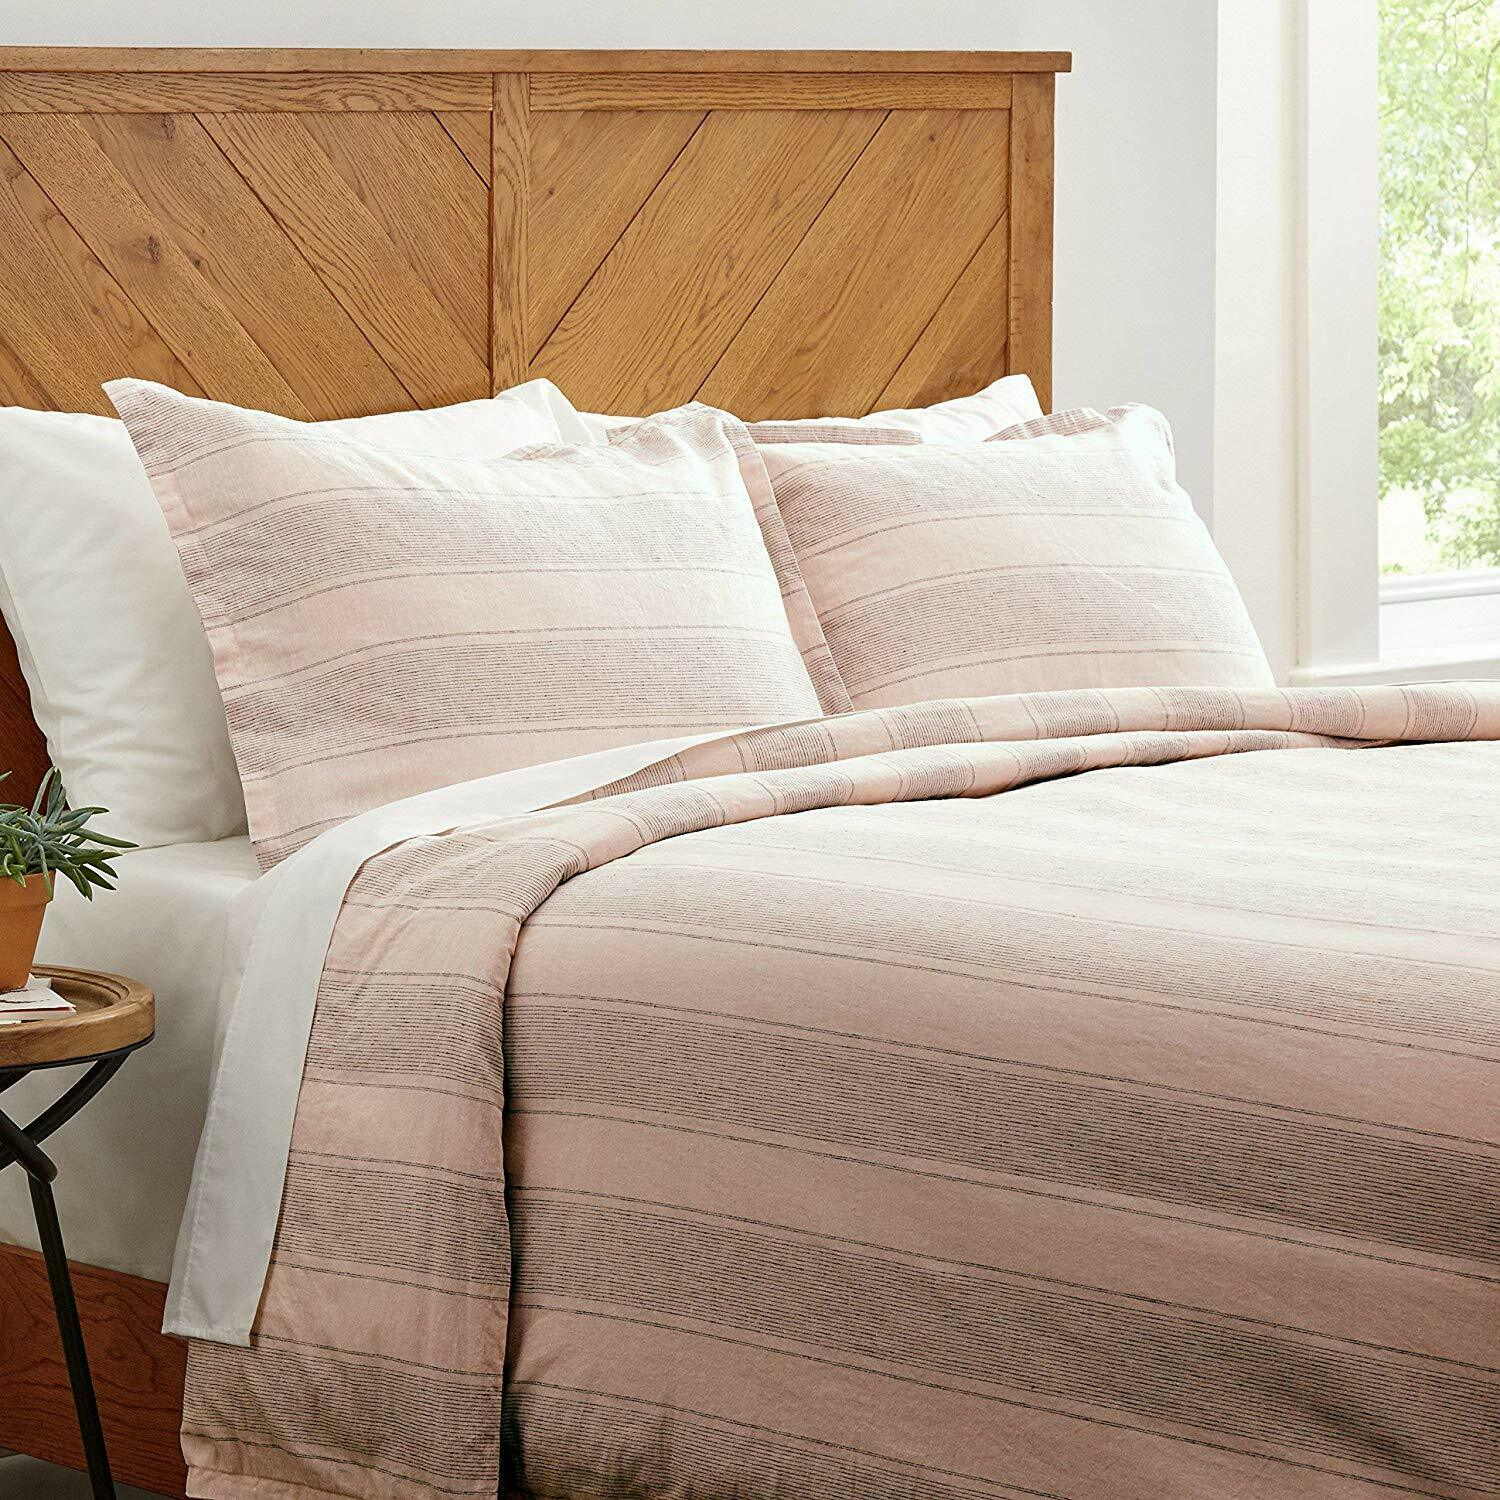 Stone & Beam Washed Linen Stripe Duvet Cover Set, Blush   blu Stripes King